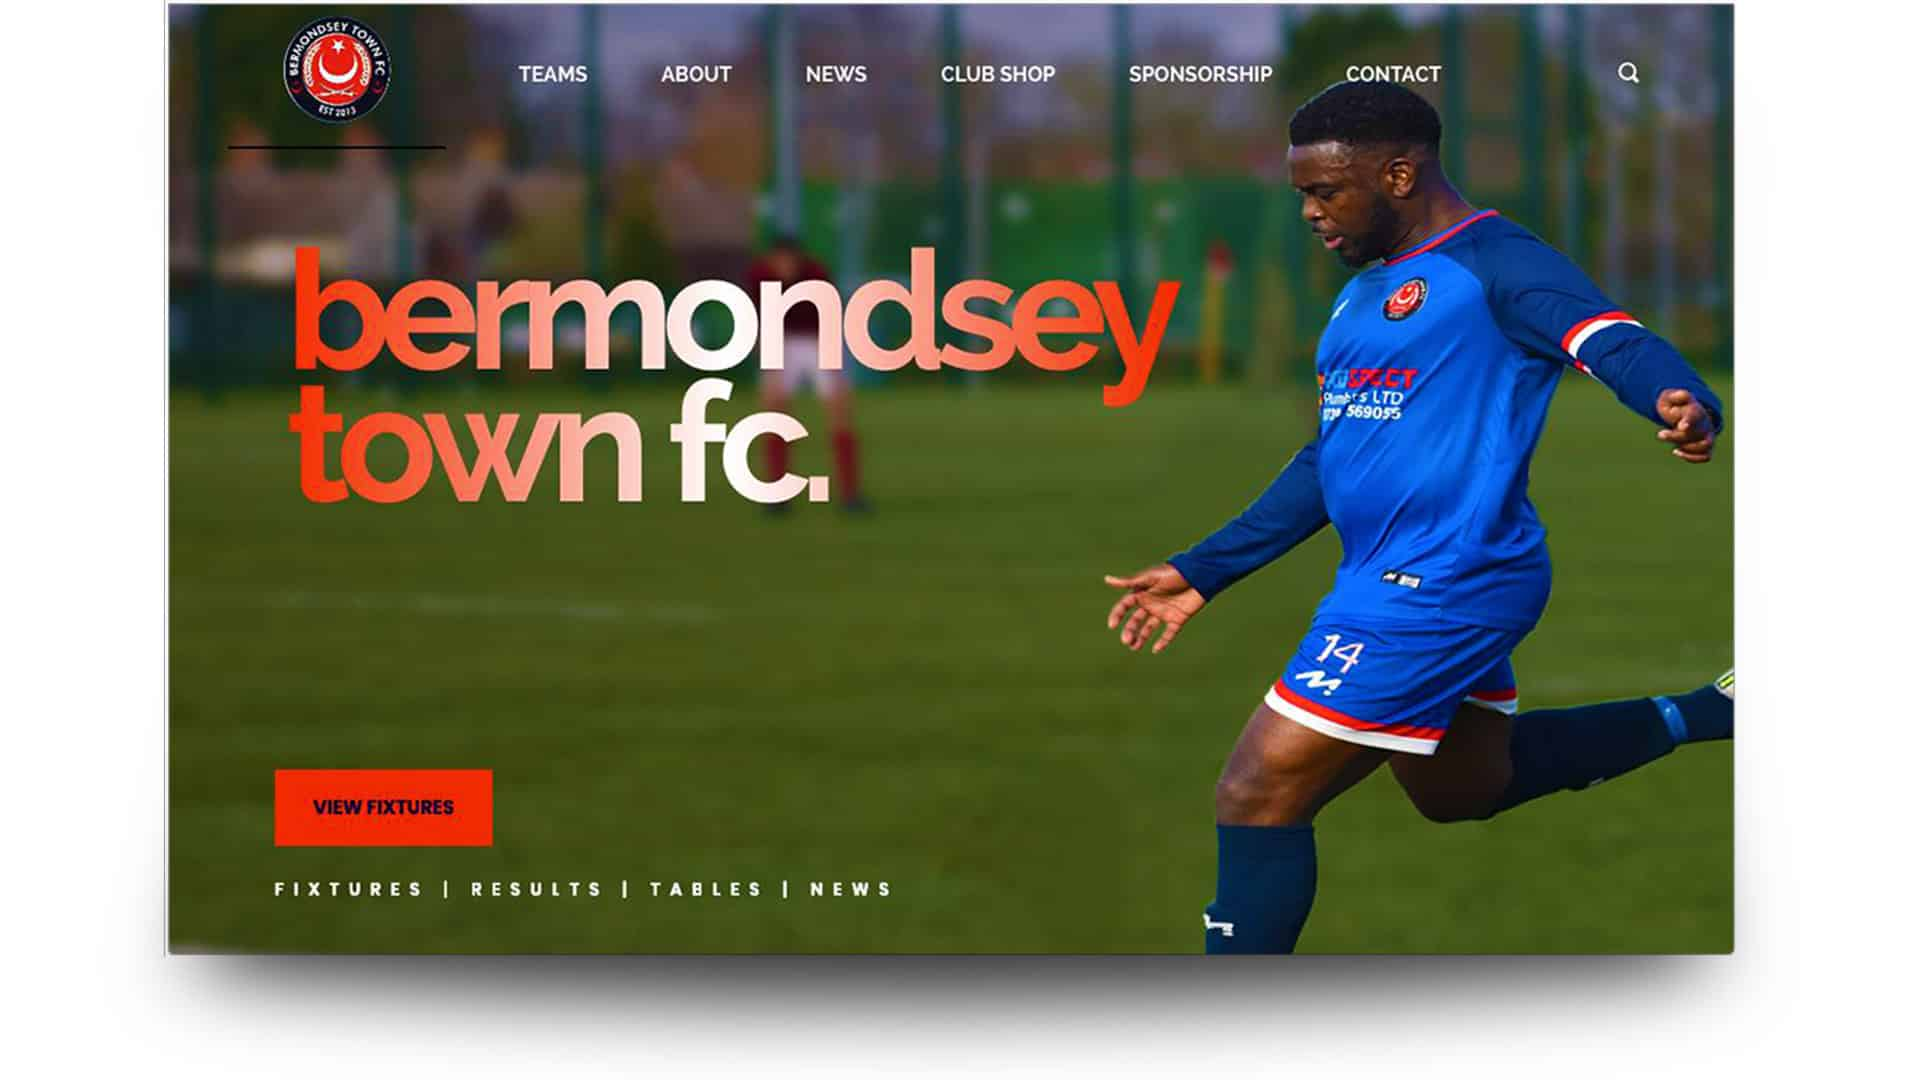 bermondsey town fc - football website design